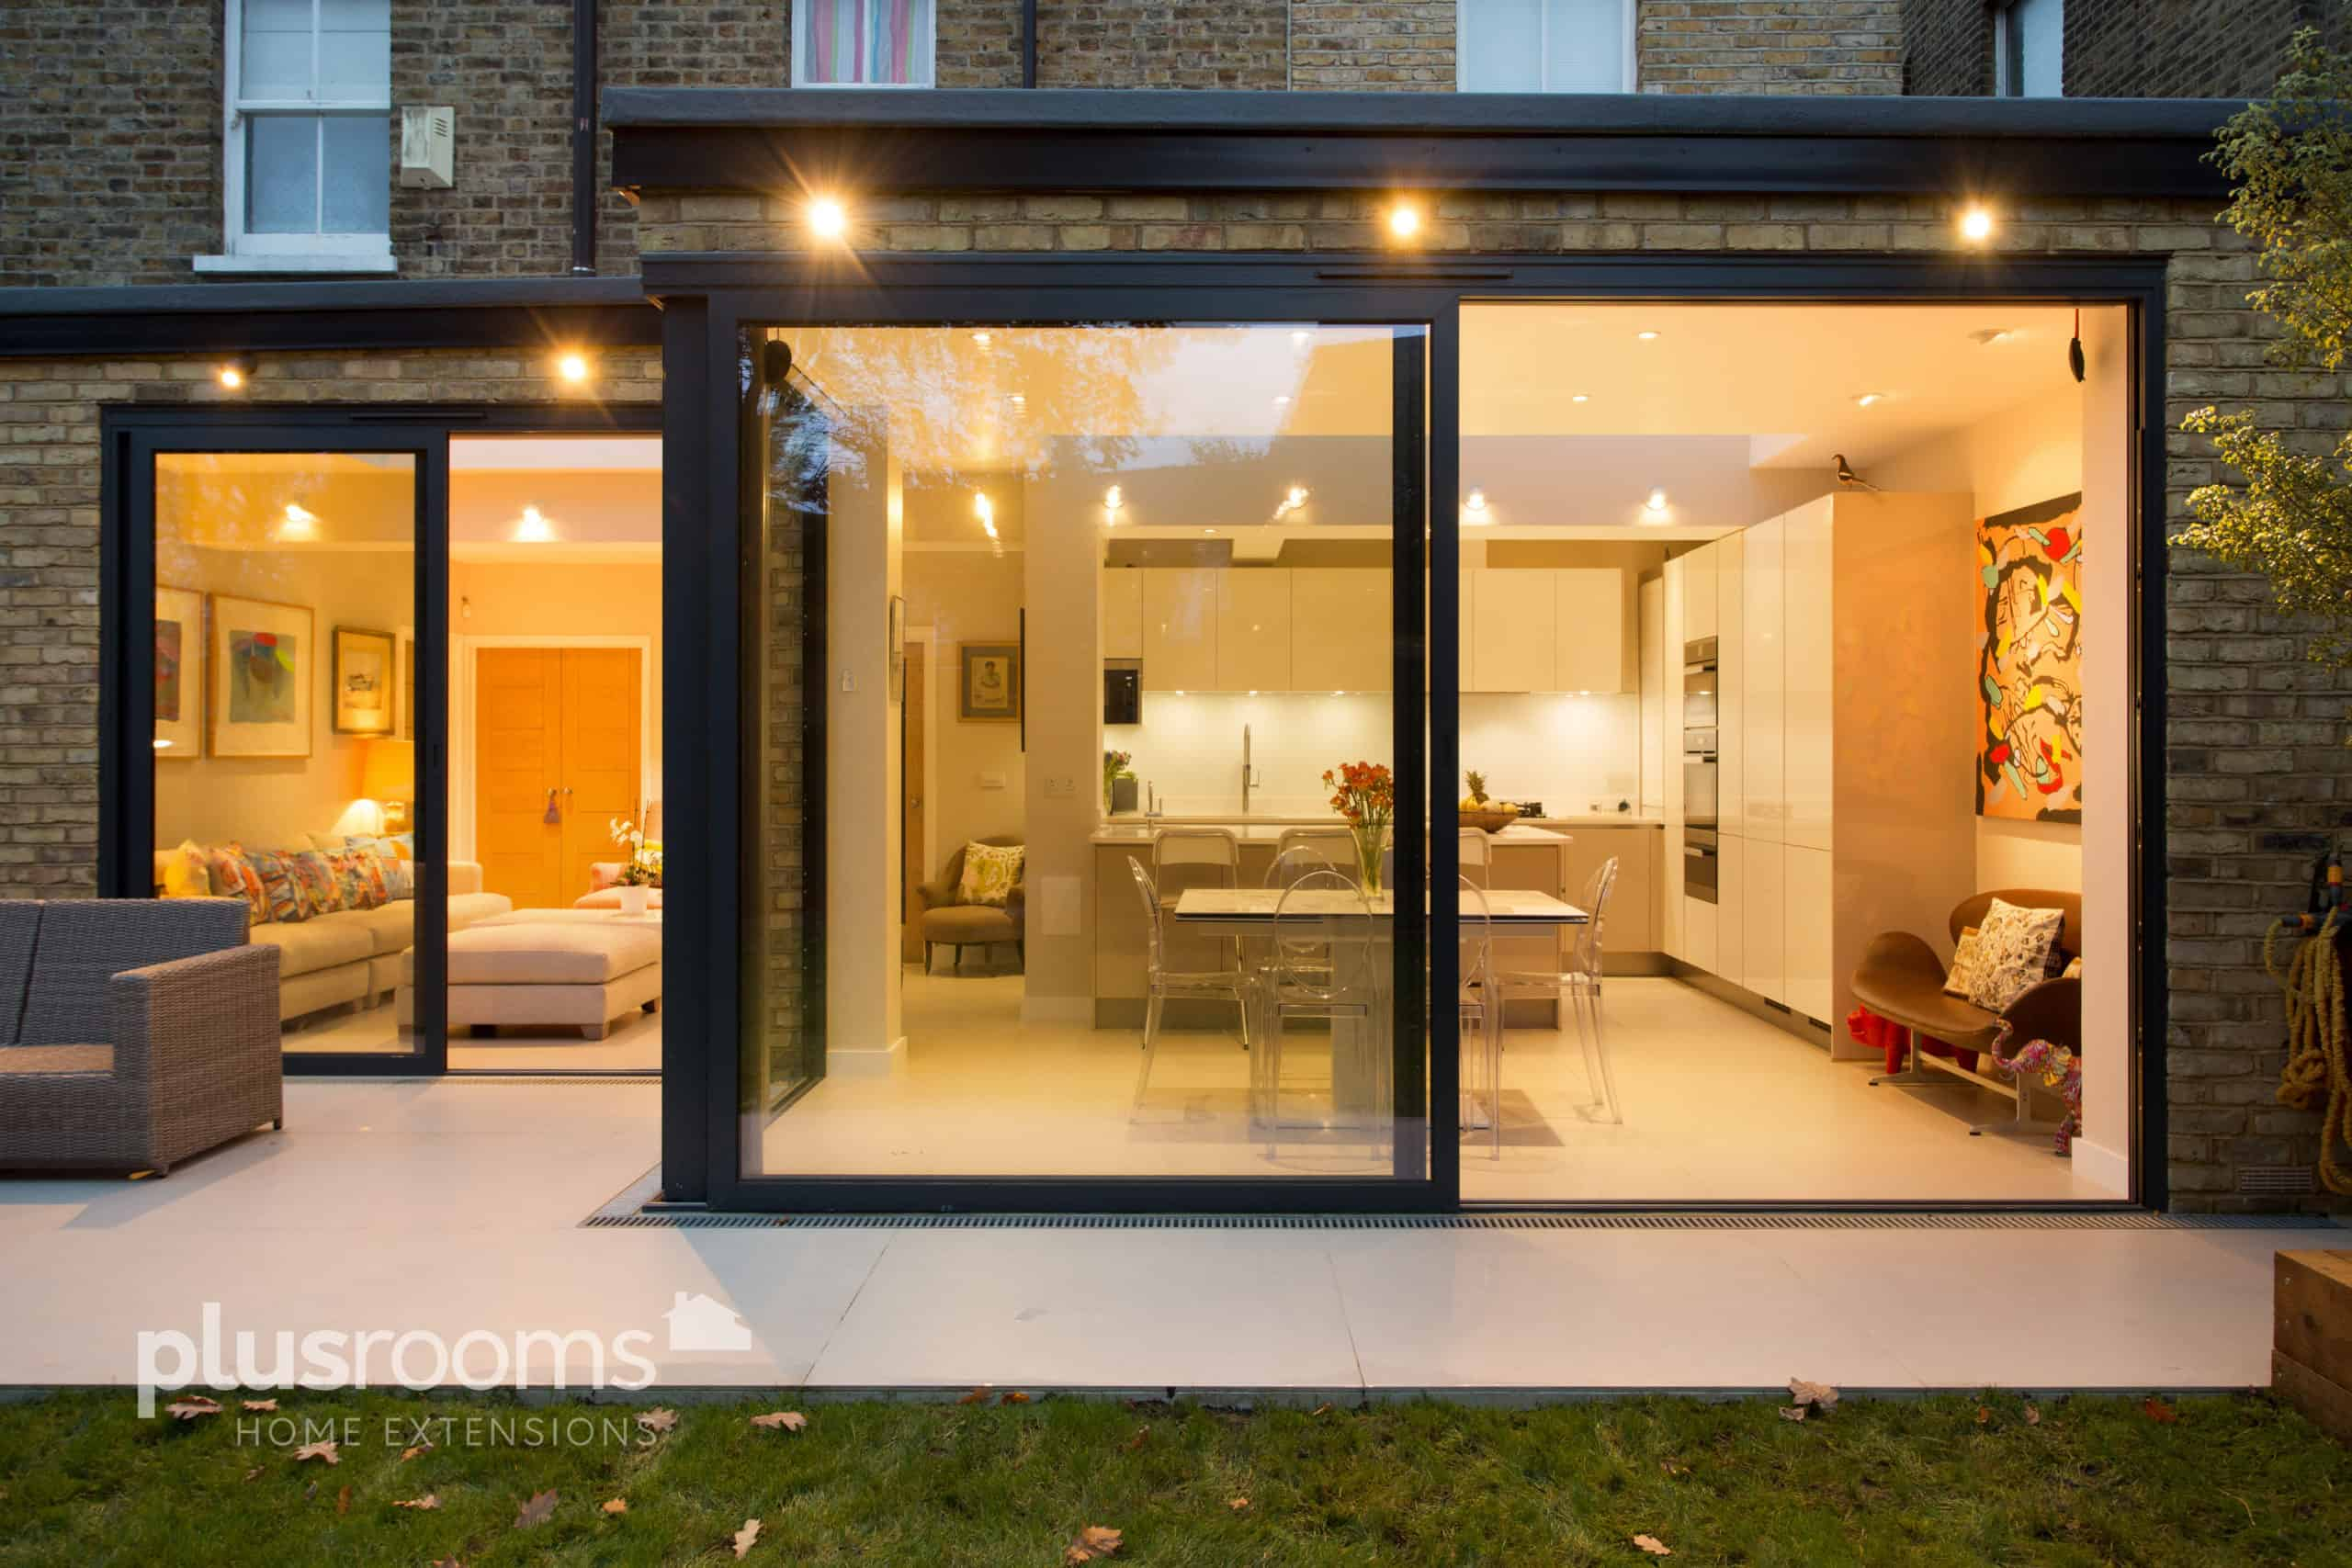 Design inspiration: Conservatory kitchen extensions